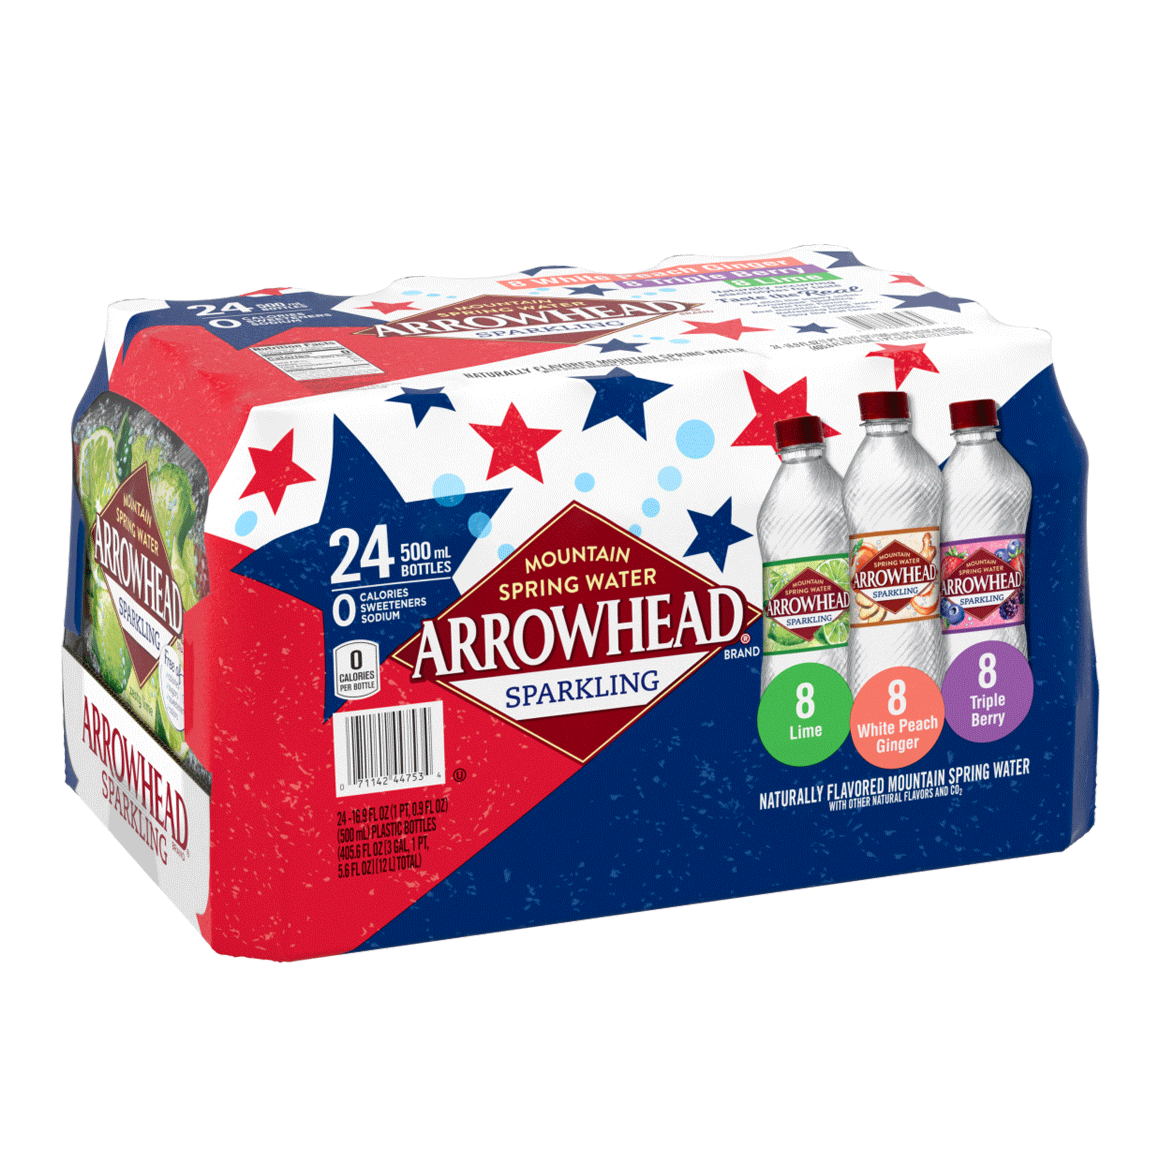 Arrowhead® Brand Sparkling 100% Mountain Spring Water - Rainbow Flavored Variety Pack Image1